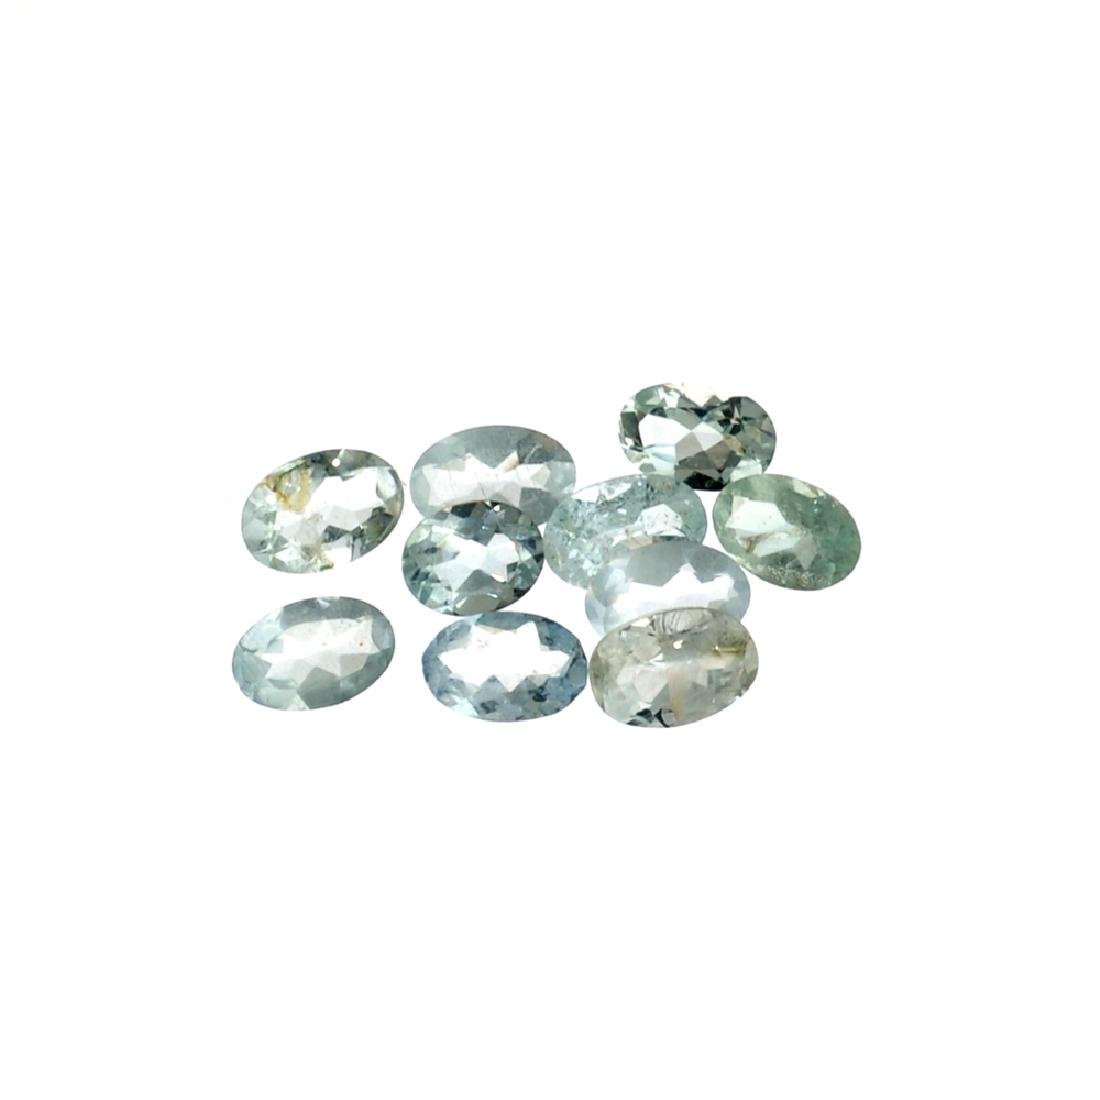 APP: 1k 3.43CT Oval Cut Aquamarine Parcel